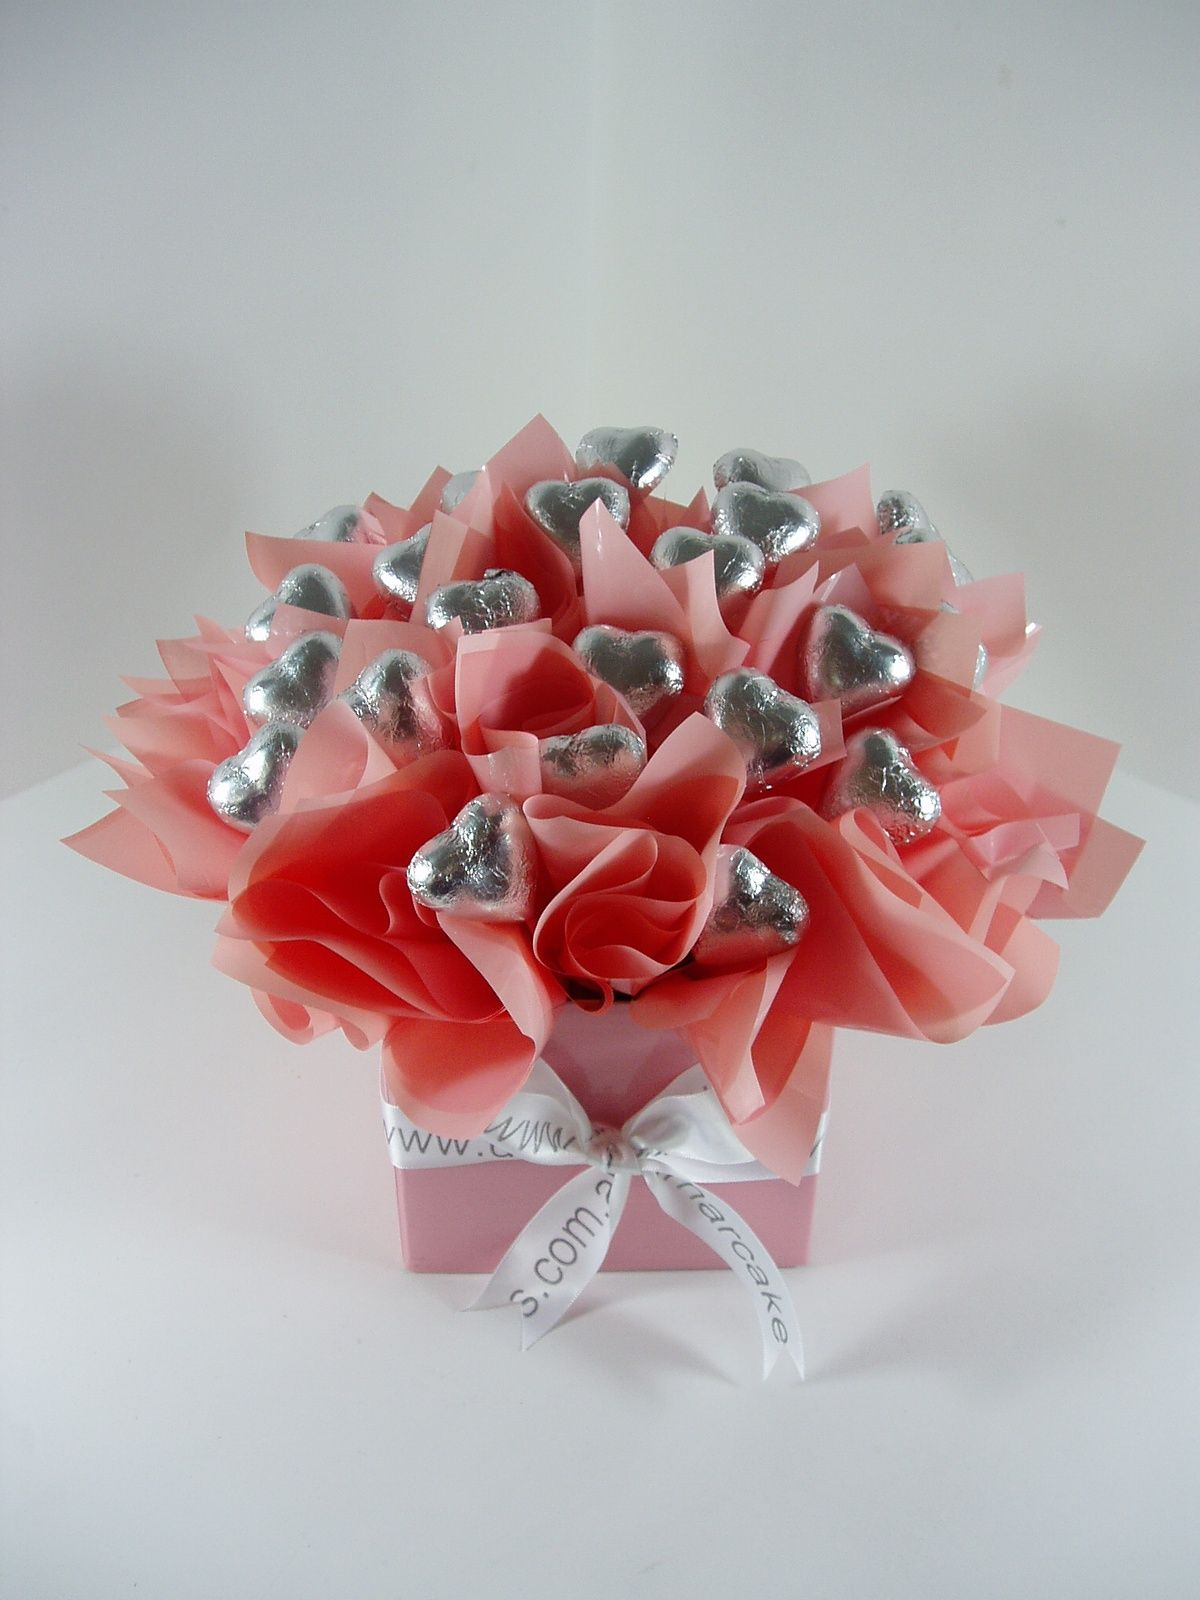 Pin by Susy Villegas on Buques dulces | DIY Valentine's ...